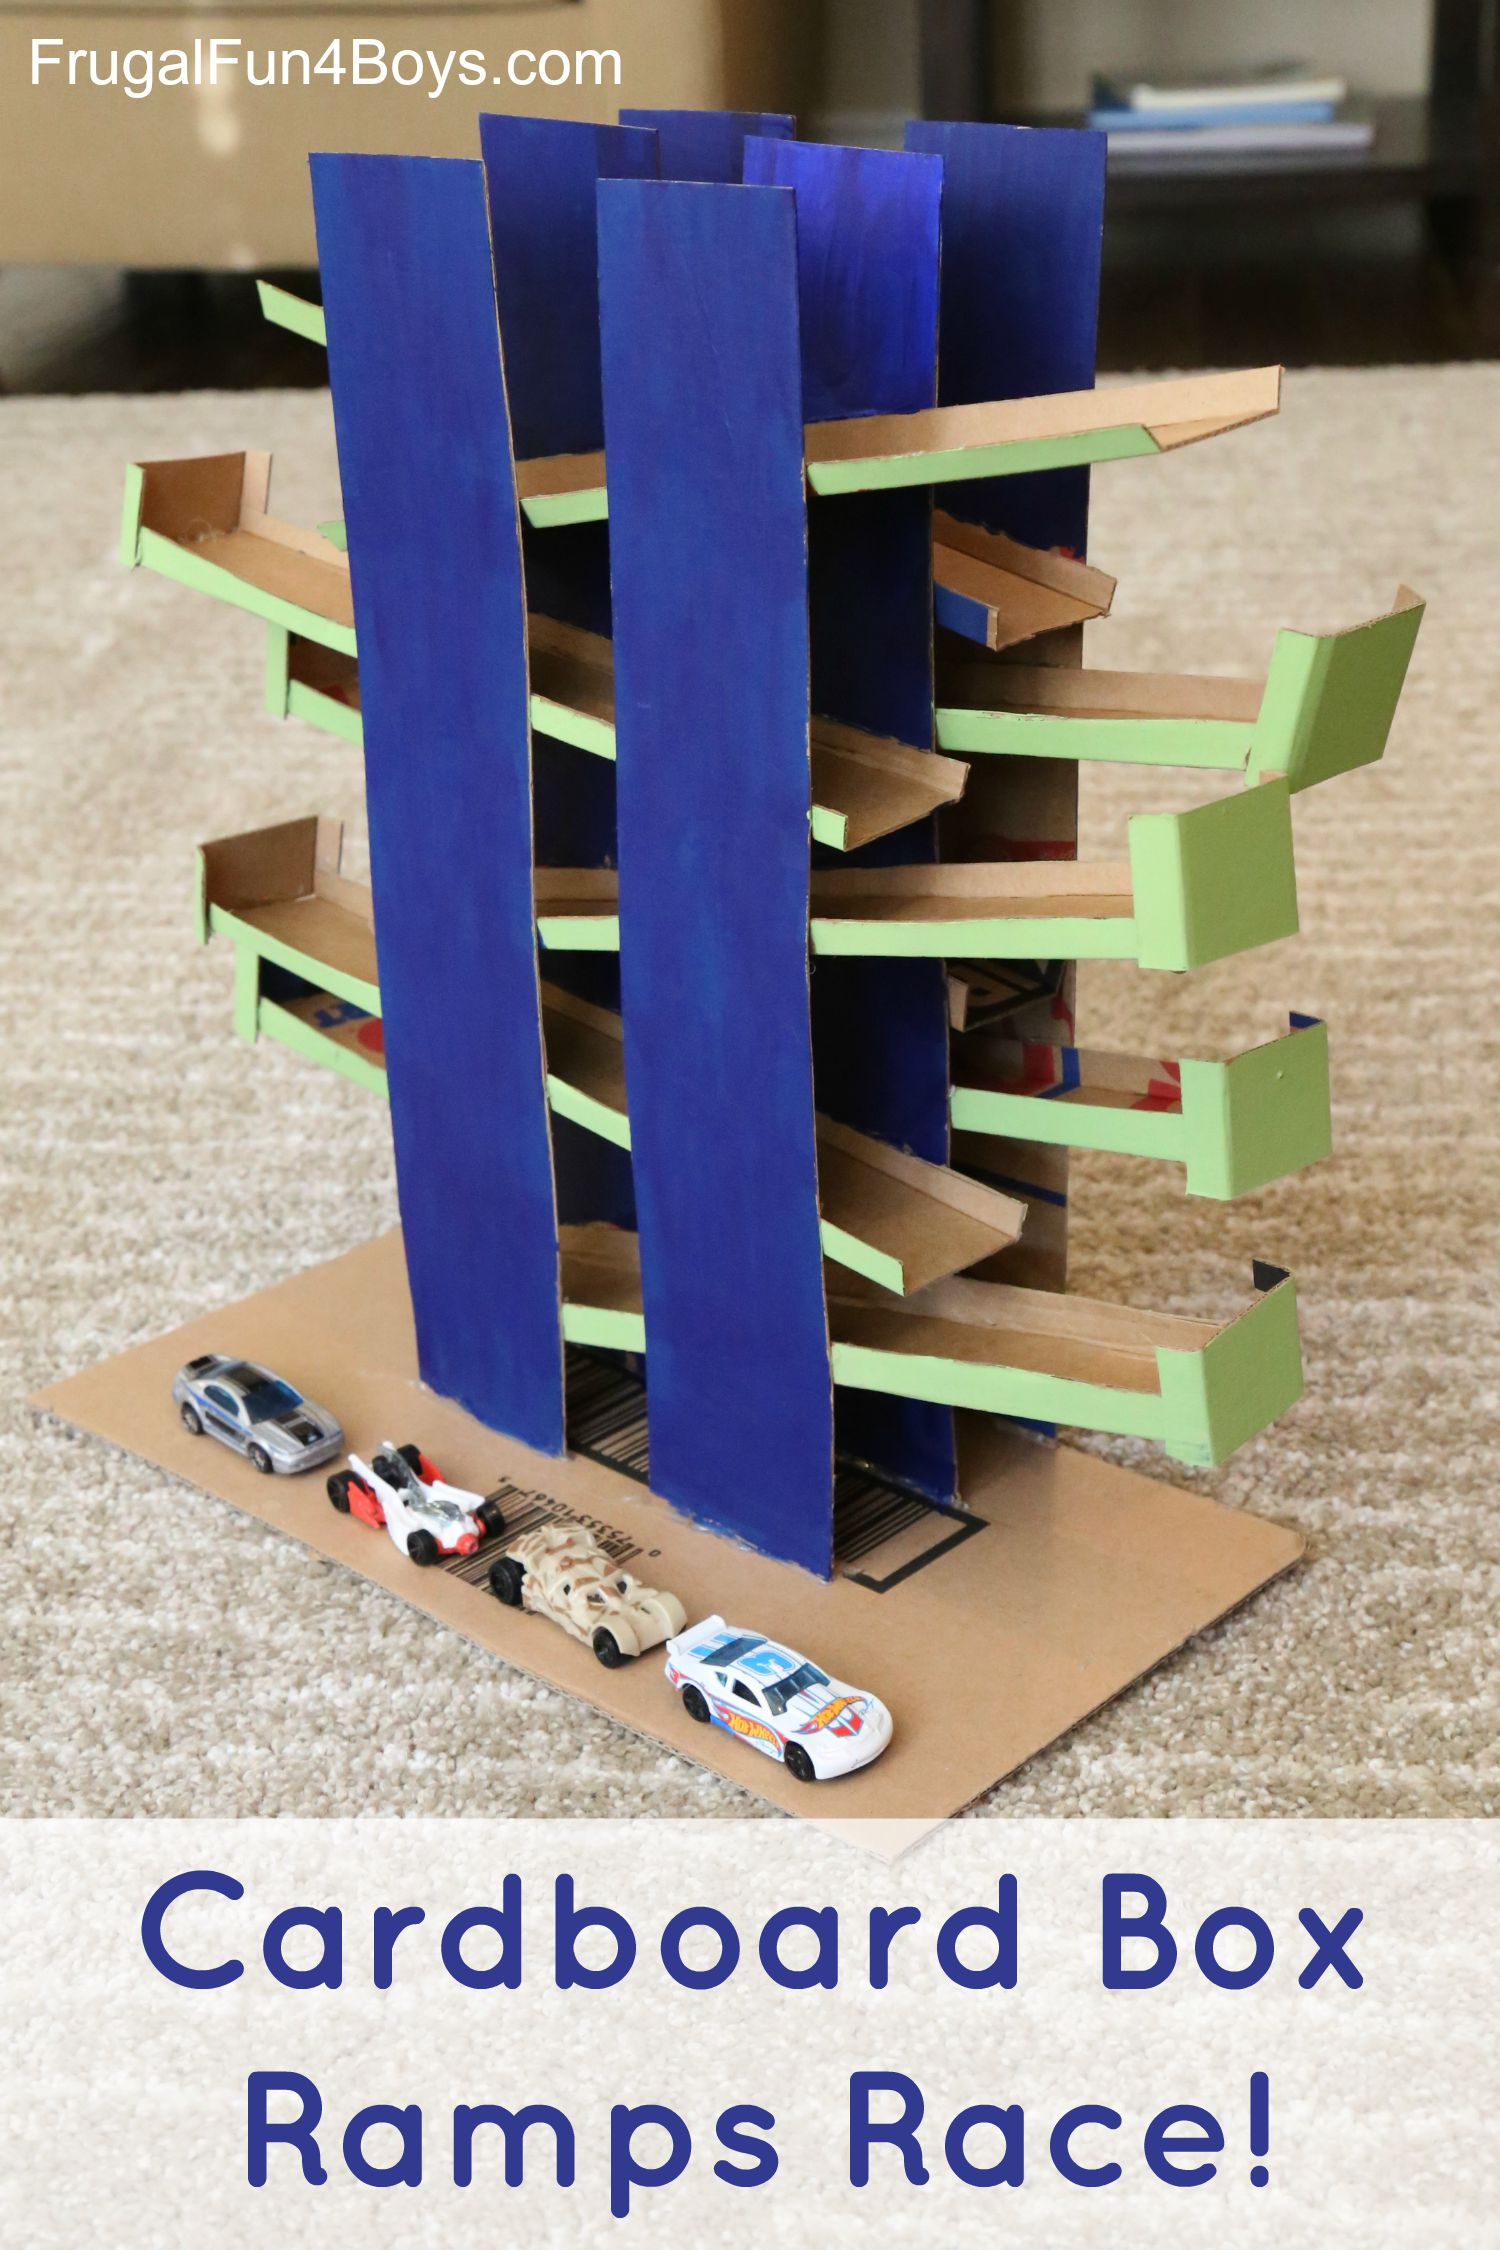 Cardboard Box Ramps Race - DIY Toy for Hot Wheels Cars